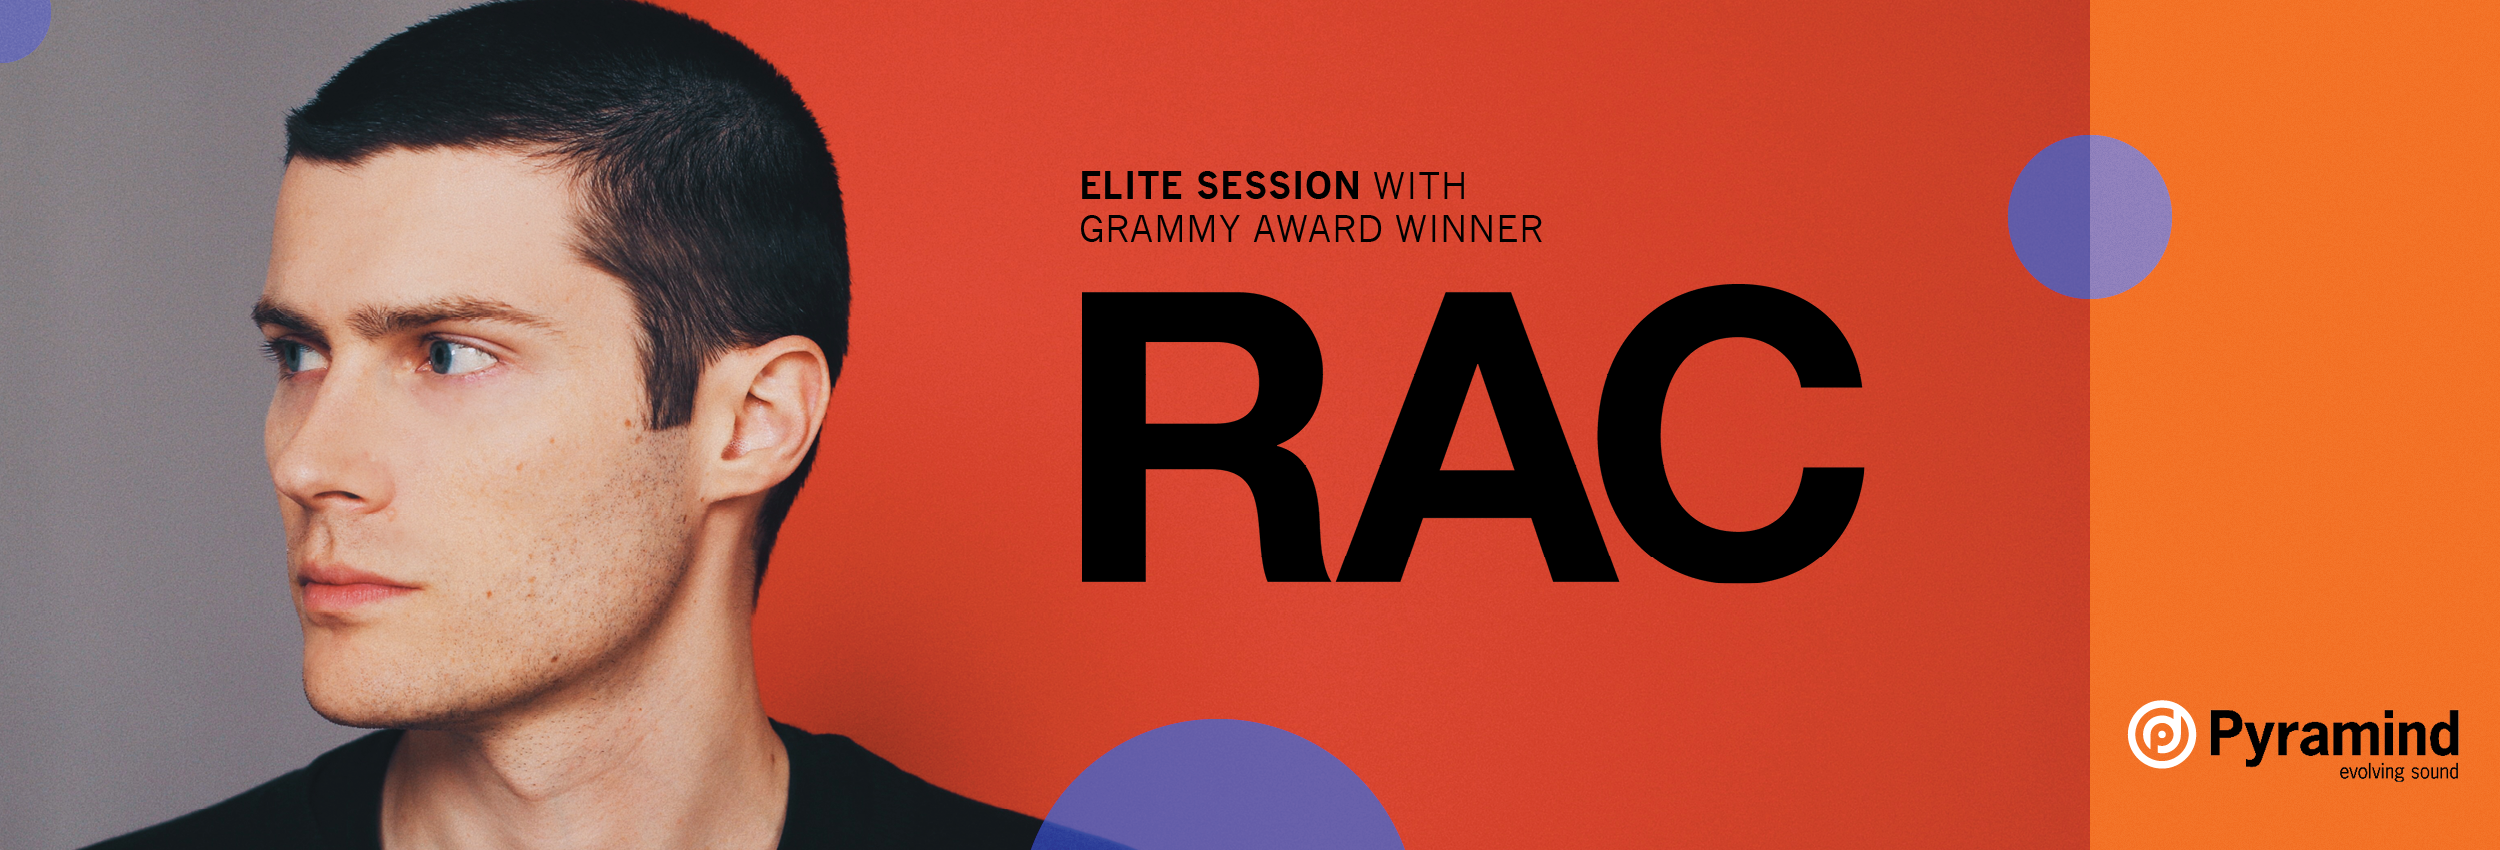 Elite Session with RAC - Pyramind